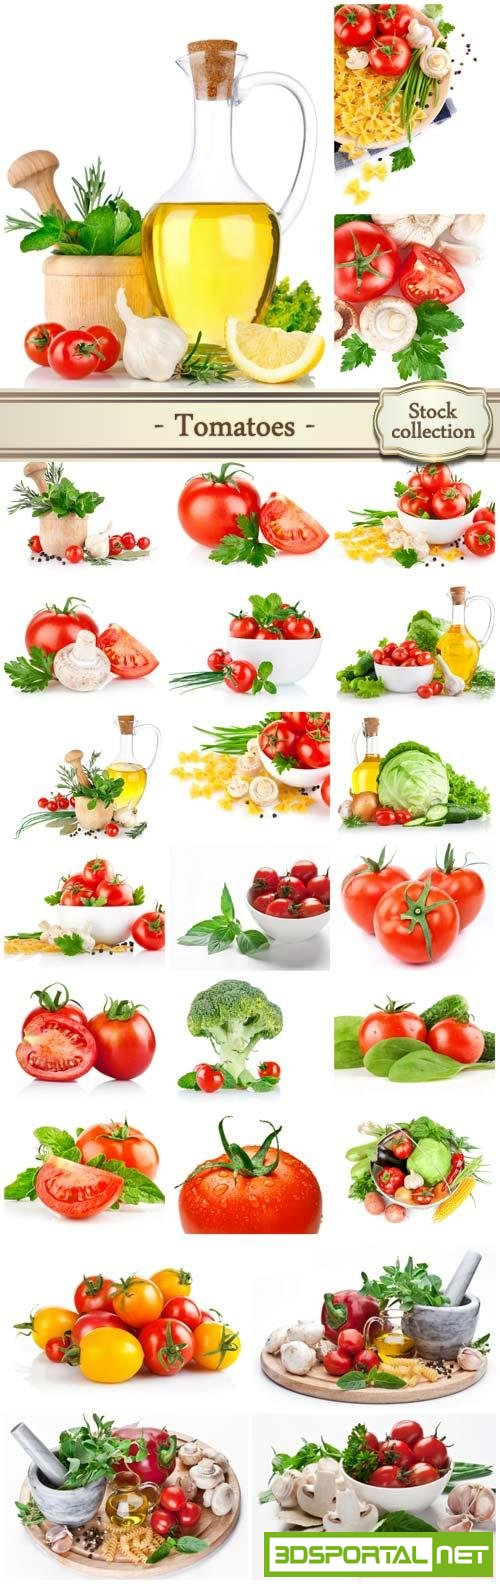 Tomatoes, vegetables - stock photos